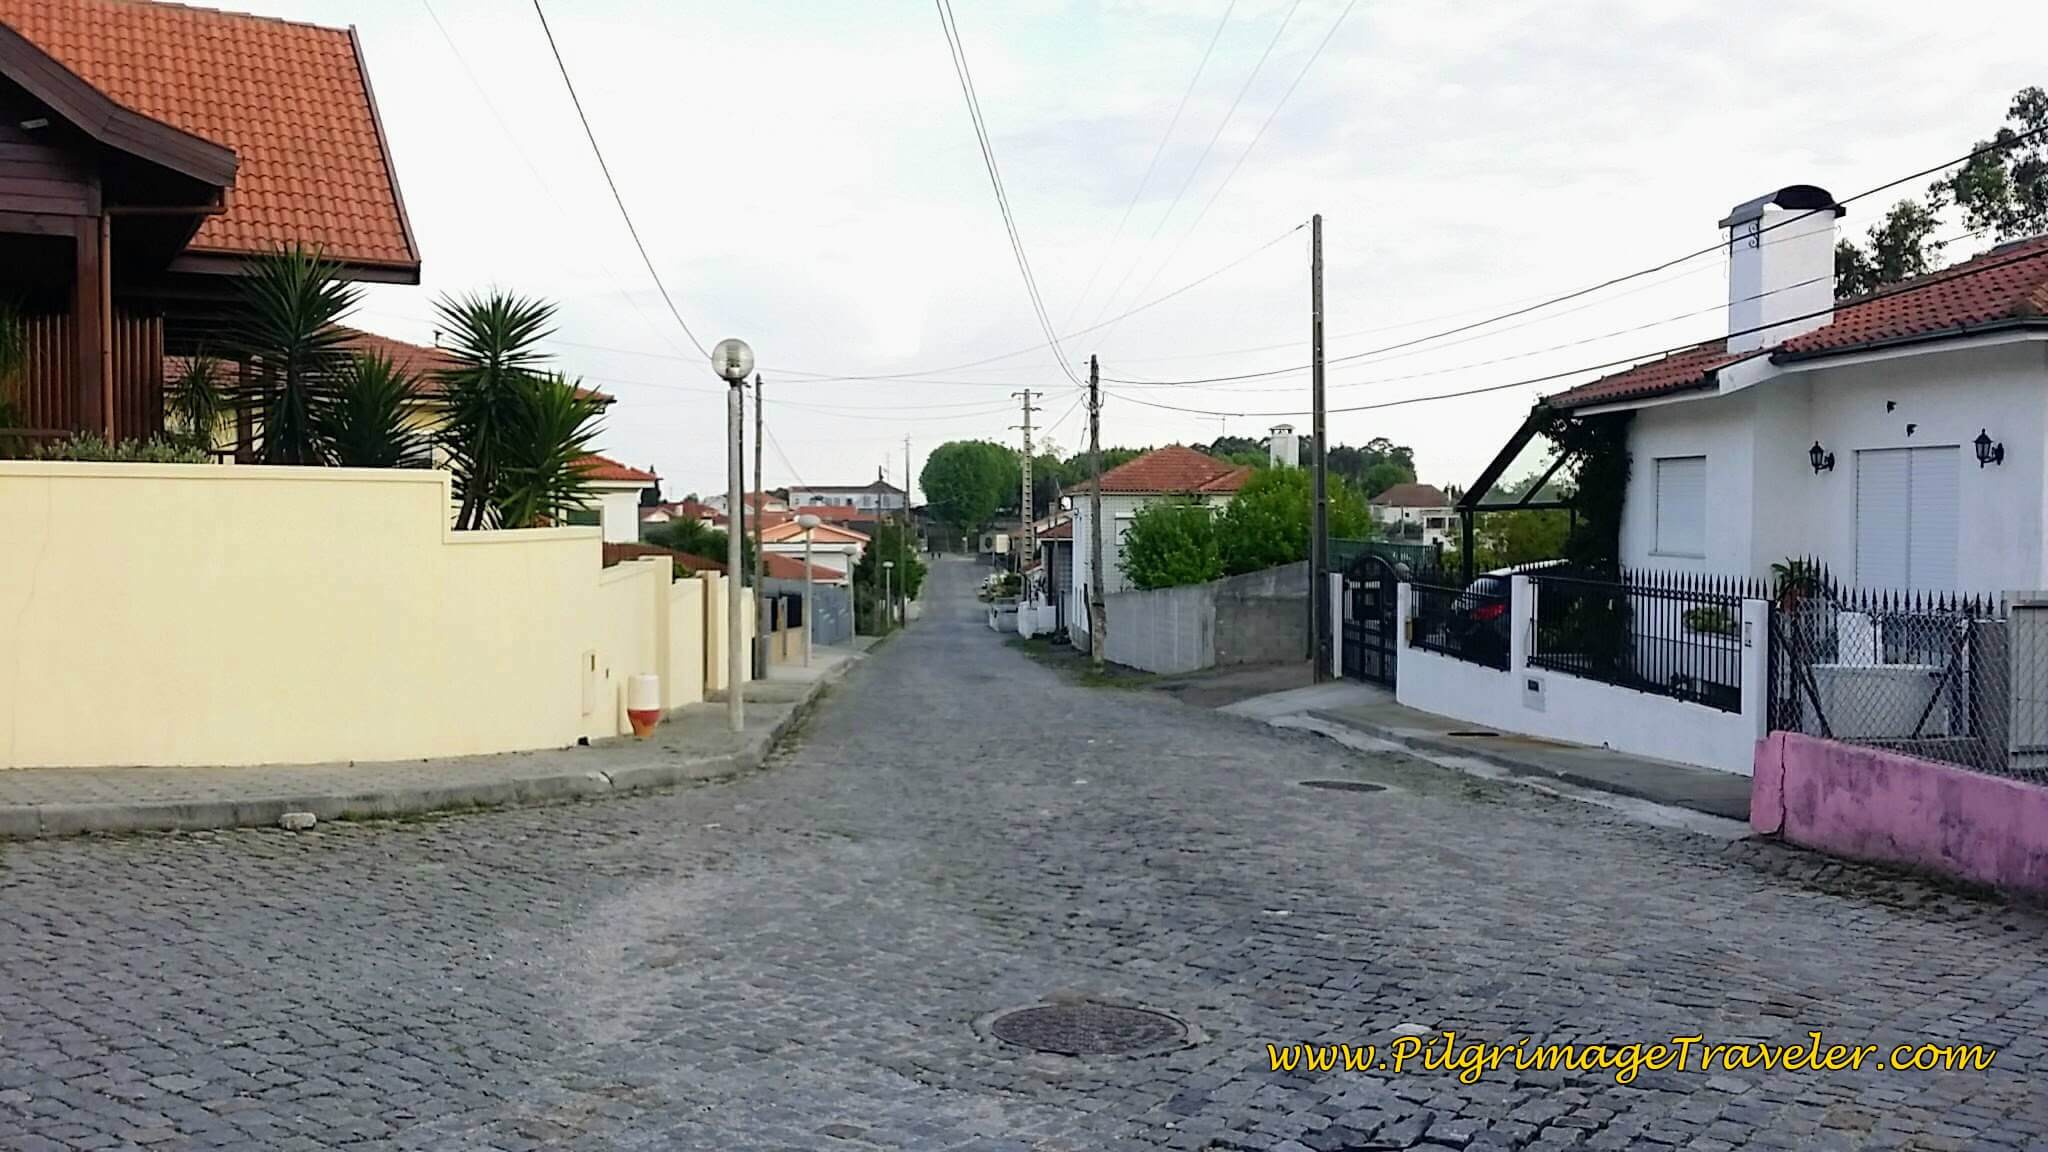 Quiet Rua Estrada Romana on Day Fourteen of the Portuguese Way